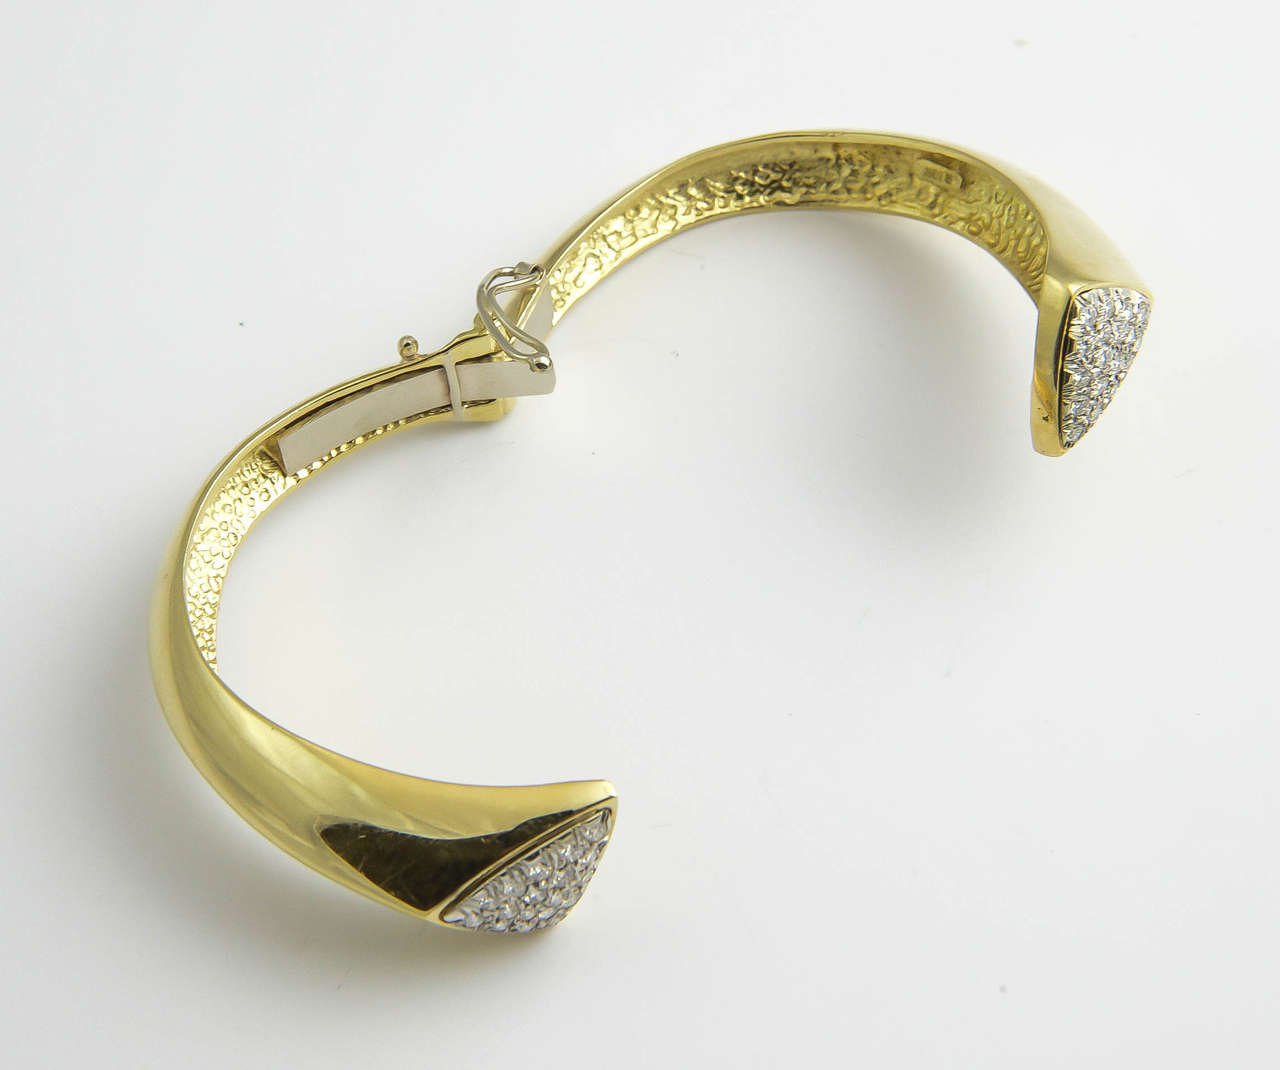 1970s Diamond Gold Bangle Bracelet For Sale 3